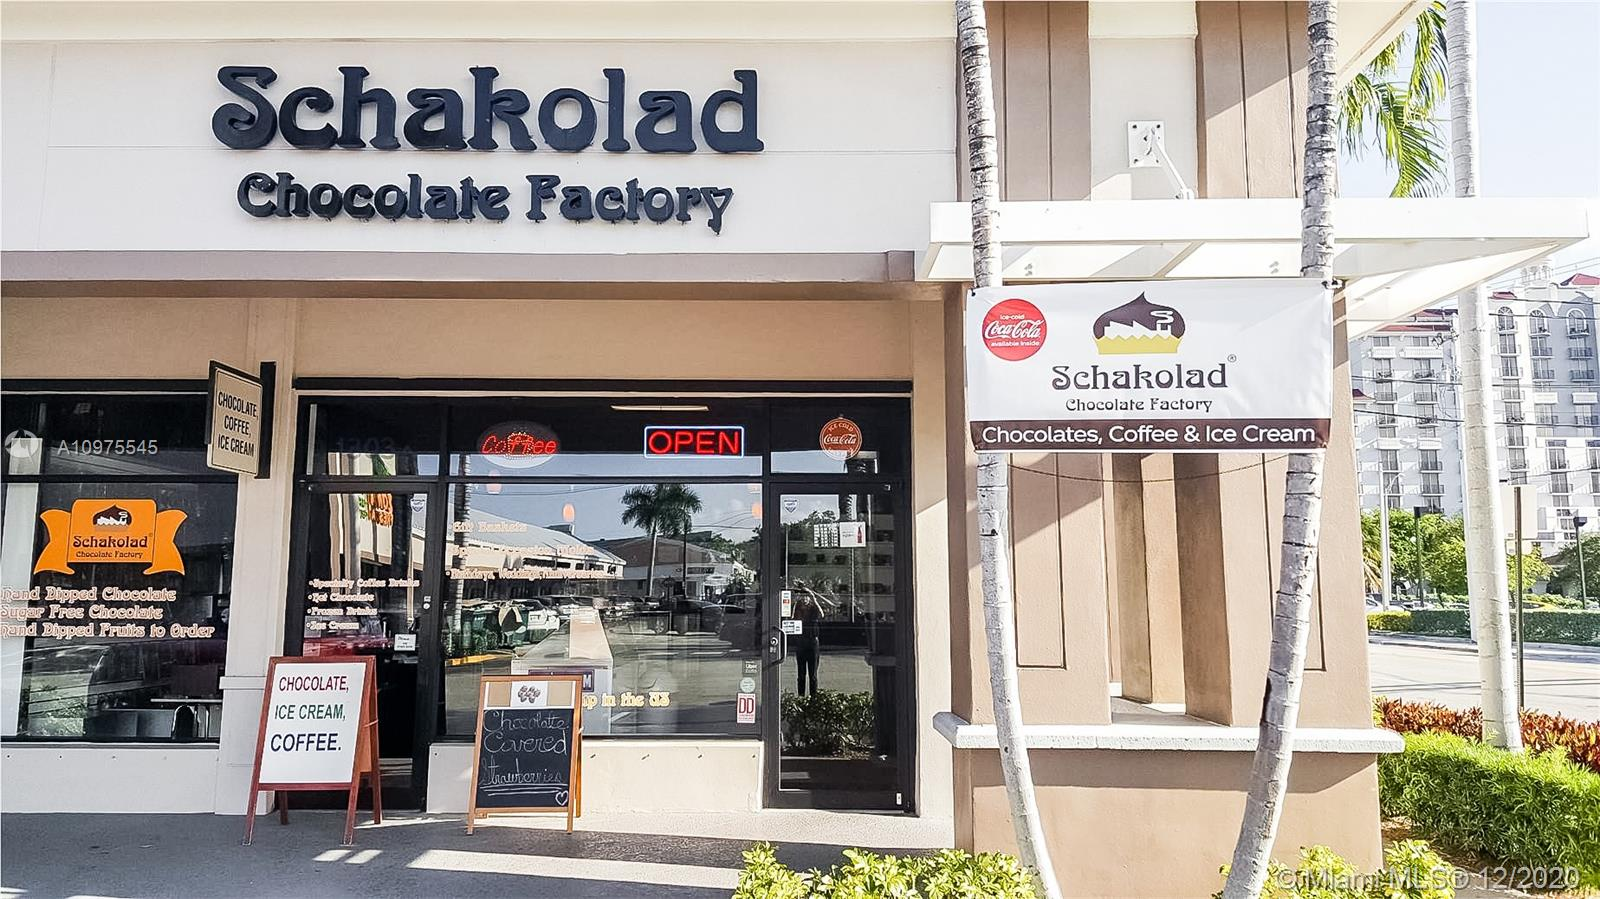 COME AND SEE THIS WELL ESTABLISHED AND PROFITABLE BOUTIQUE CHOCOLATE STORE LOCATED ON THE CORNER OF BUSY SHOPPING STRIP. STORE HAS BEEN IN BUSINESS 6 YEARS. PRICE INCLUDES INVENTORY, SUPPLIES, FIXTURES, APPLIANCES, CASH REGISTER, FRANCHISE TRANSFER FEES, ETC. STORE IS 1,000 SQ FT + UNLIMITED PARKING SPACES. AS A MEMBER OF A WELL KNOWN NATIONAL FRANCHISE NETWORK, WELL CONCEIVED MANAGEMENT PRACTICES ARE IN PLACE, WITH ESTABLISHED MANUFACTURING, MARKETING AND BUSINESS PROTOCOLS - STRAIGHT FORWARD AND EASY TO TRANSITION. MAY QUALIFY FOR AN E2 TREATY VISA. THE FRANCHISOR WILL PROVIDE CHOCOLATE PREPARATION & PRODUCTION TRAINING, AS WELL AS MARKETING ASSISTANCE. A GREAT TURNKEY BUSINESS OPPORTUNITY. BUSINESS PRODUCES GOOD CASH FLOW. FRANCHISOR IS LOOKING FOR OWNER OPERATOR.